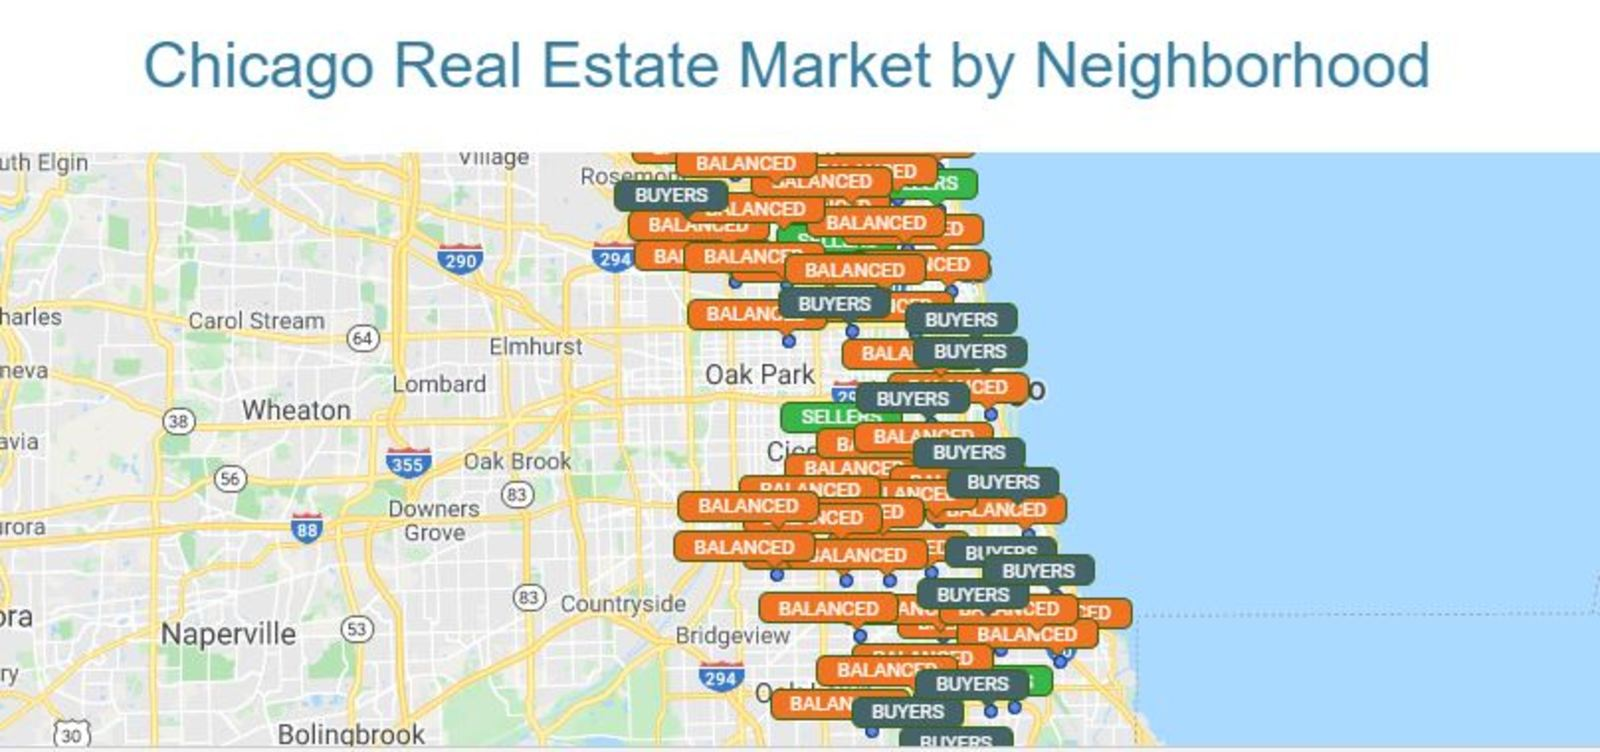 Chicago Real Estate market by Neighborhood